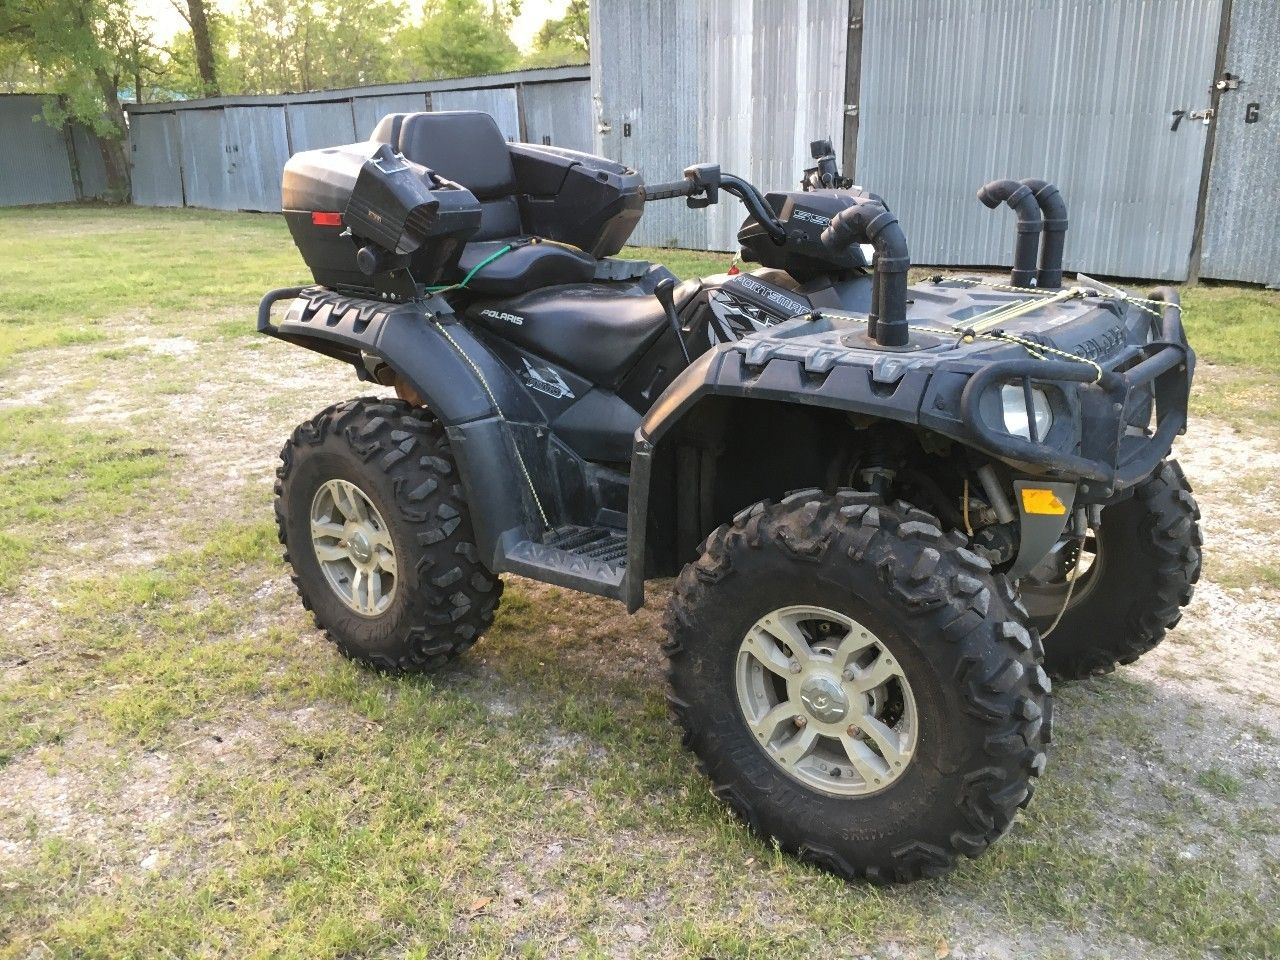 Used 2009 Polaris SPORTSMAN 550 EPS ATVs For Sale in Texas. 2009 ...